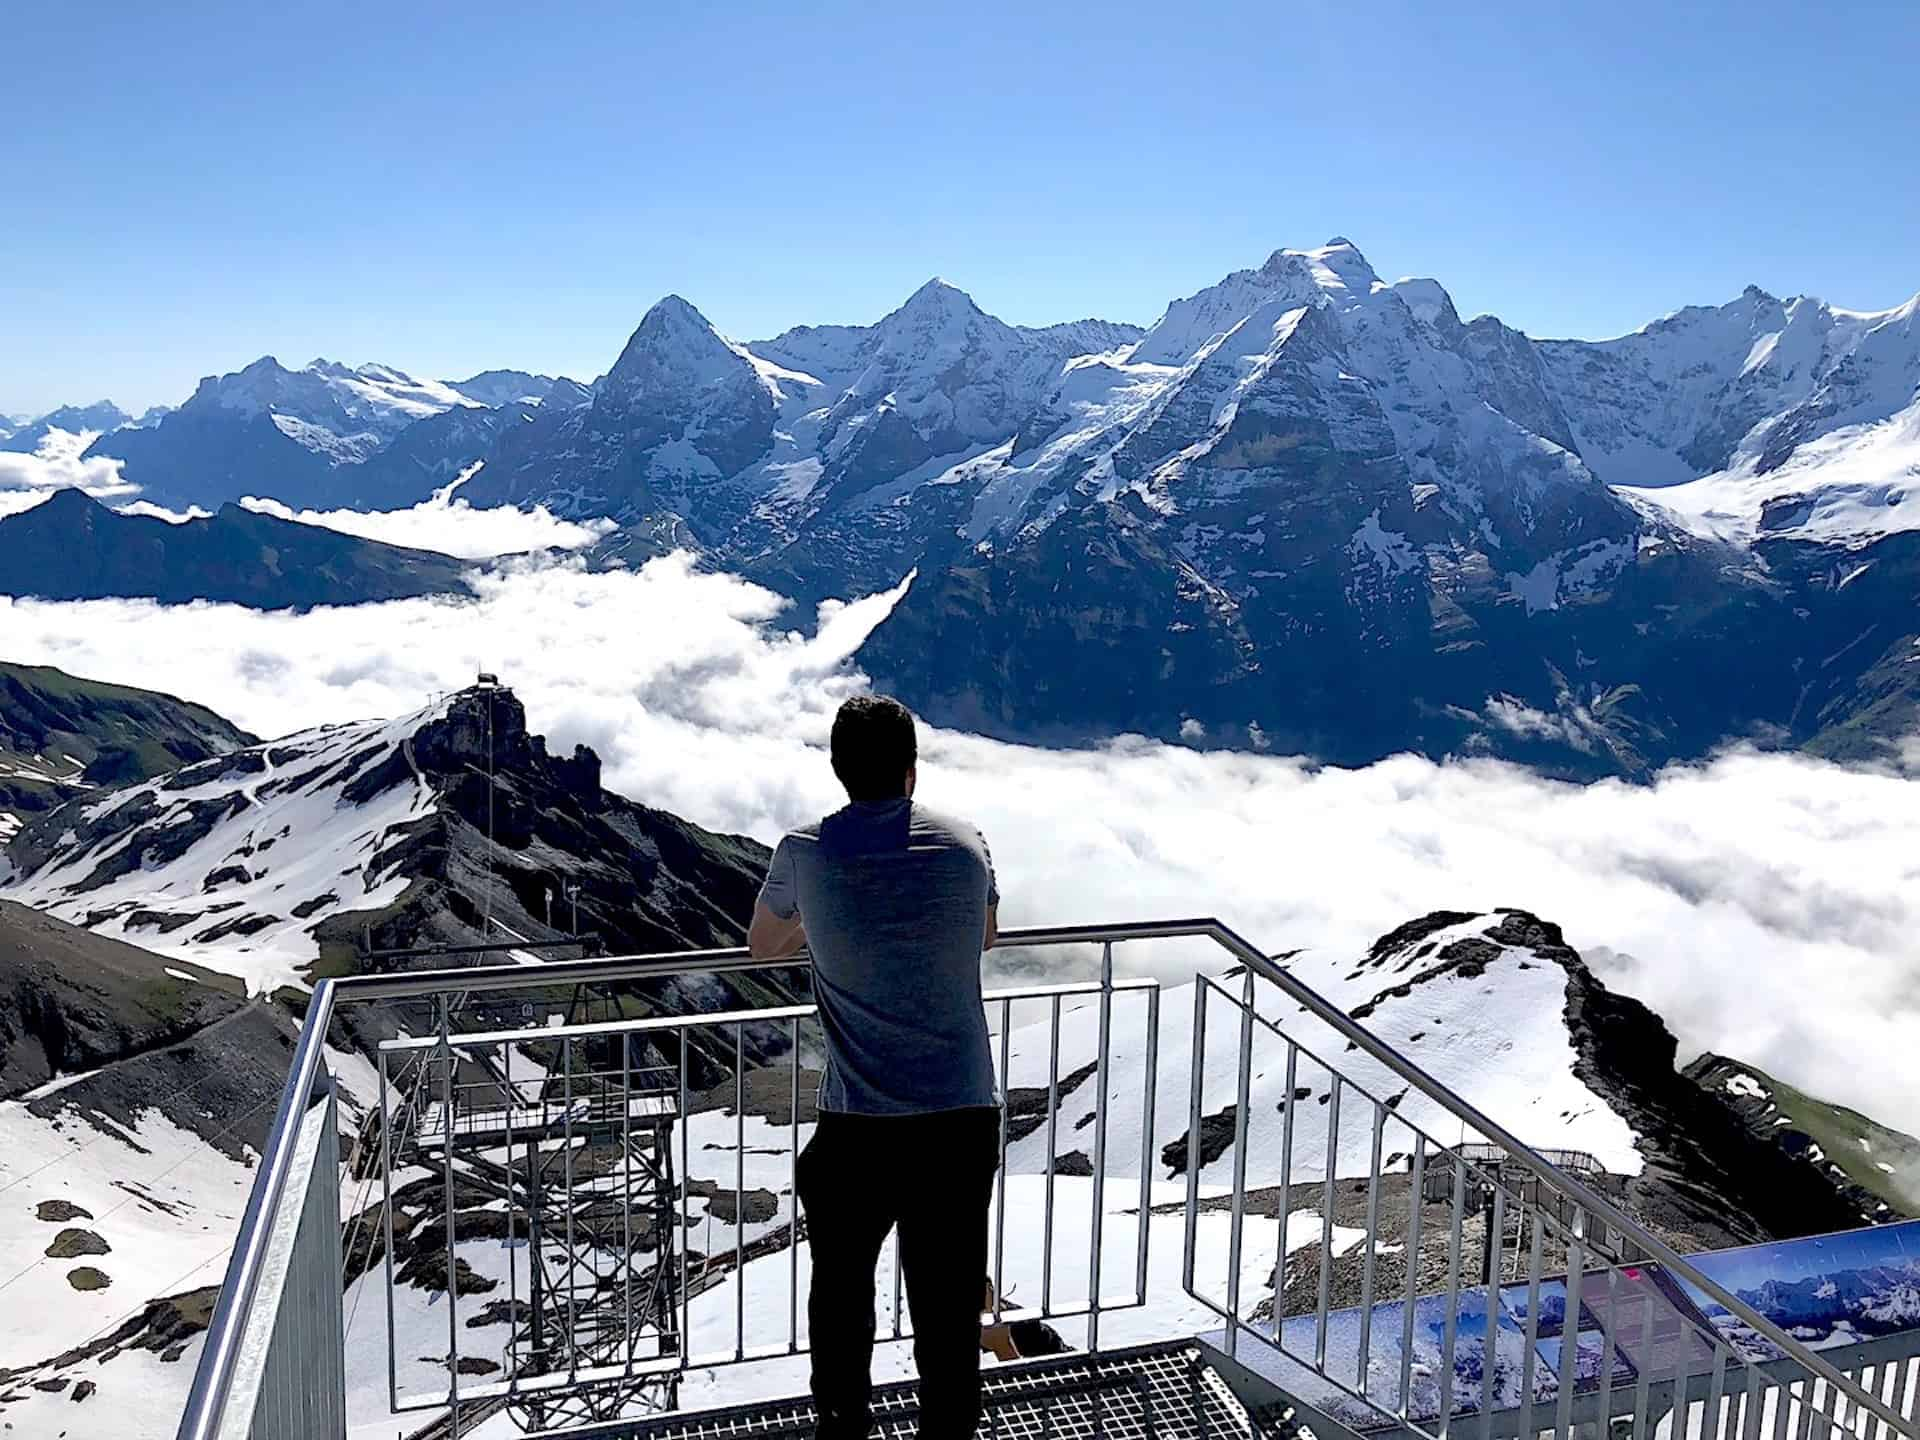 A Complete Guide to Schilthorn Switzerland